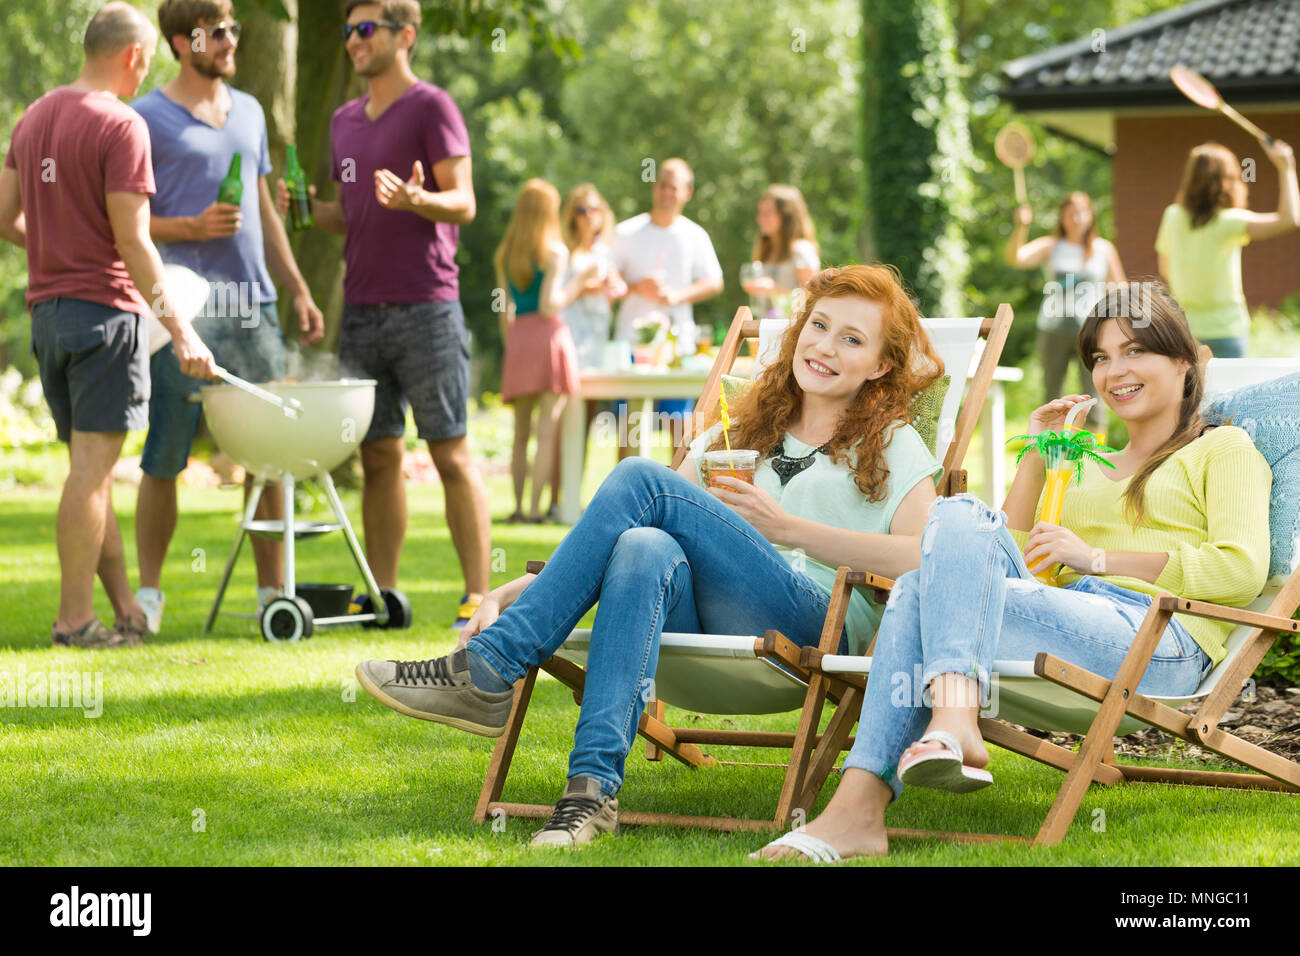 Two girls sitting on deckchairs with drinks, men grilling Stock Photo